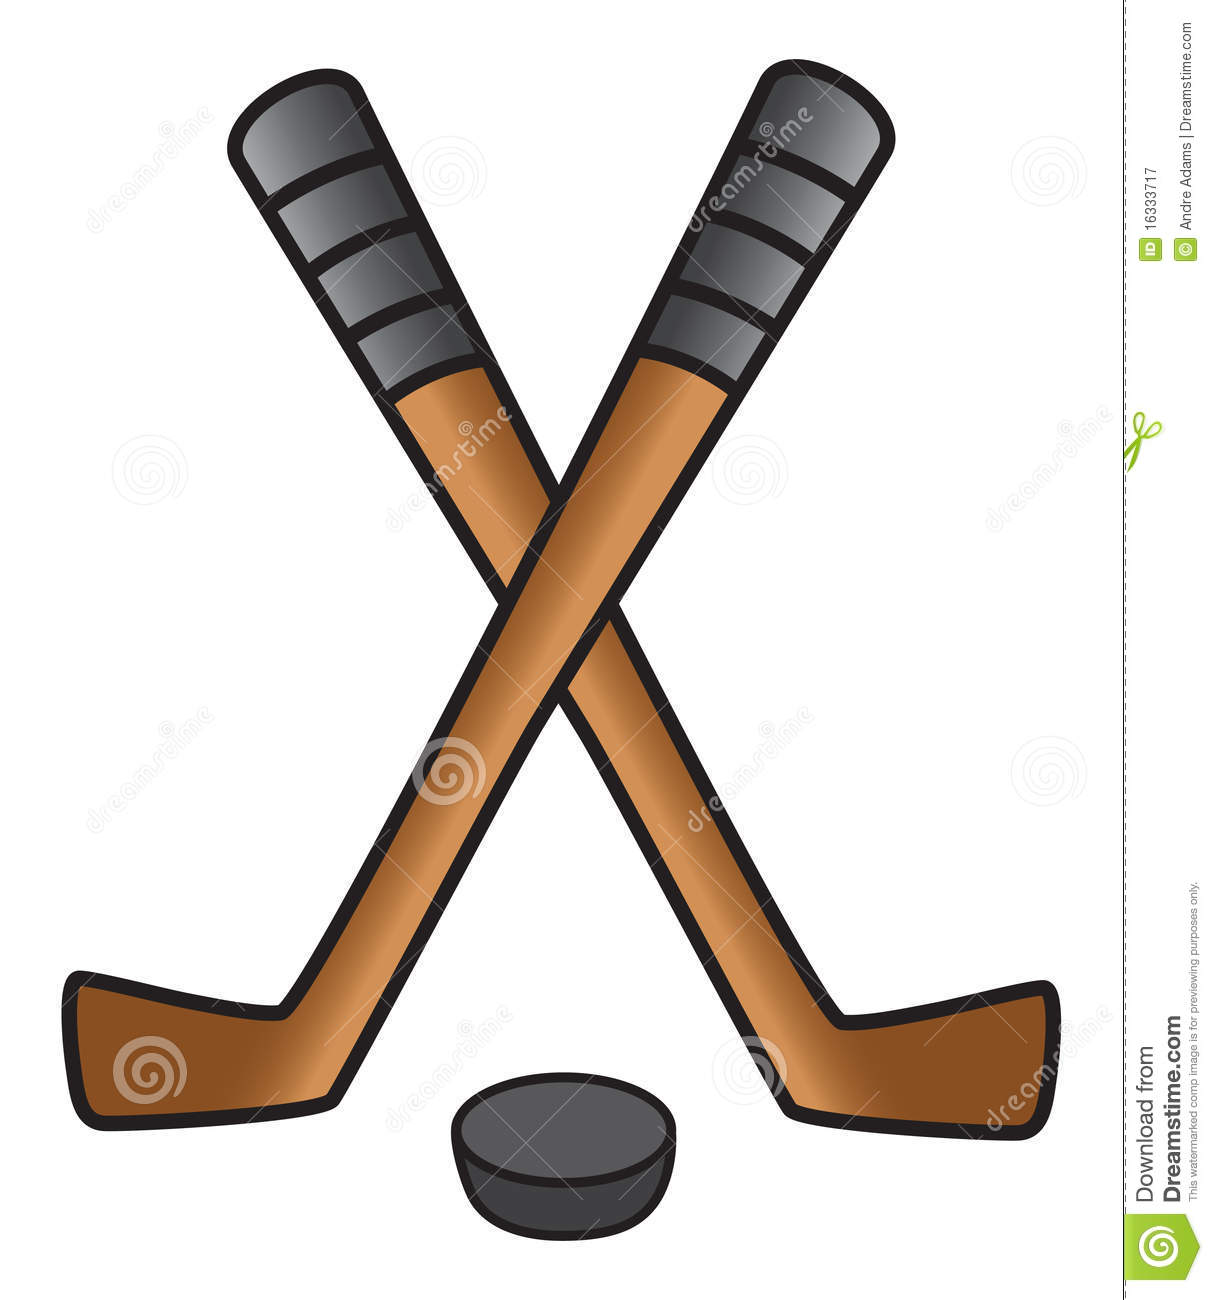 Hockey Stick   Puck Royalty Free Stock Photography   Image  16333717